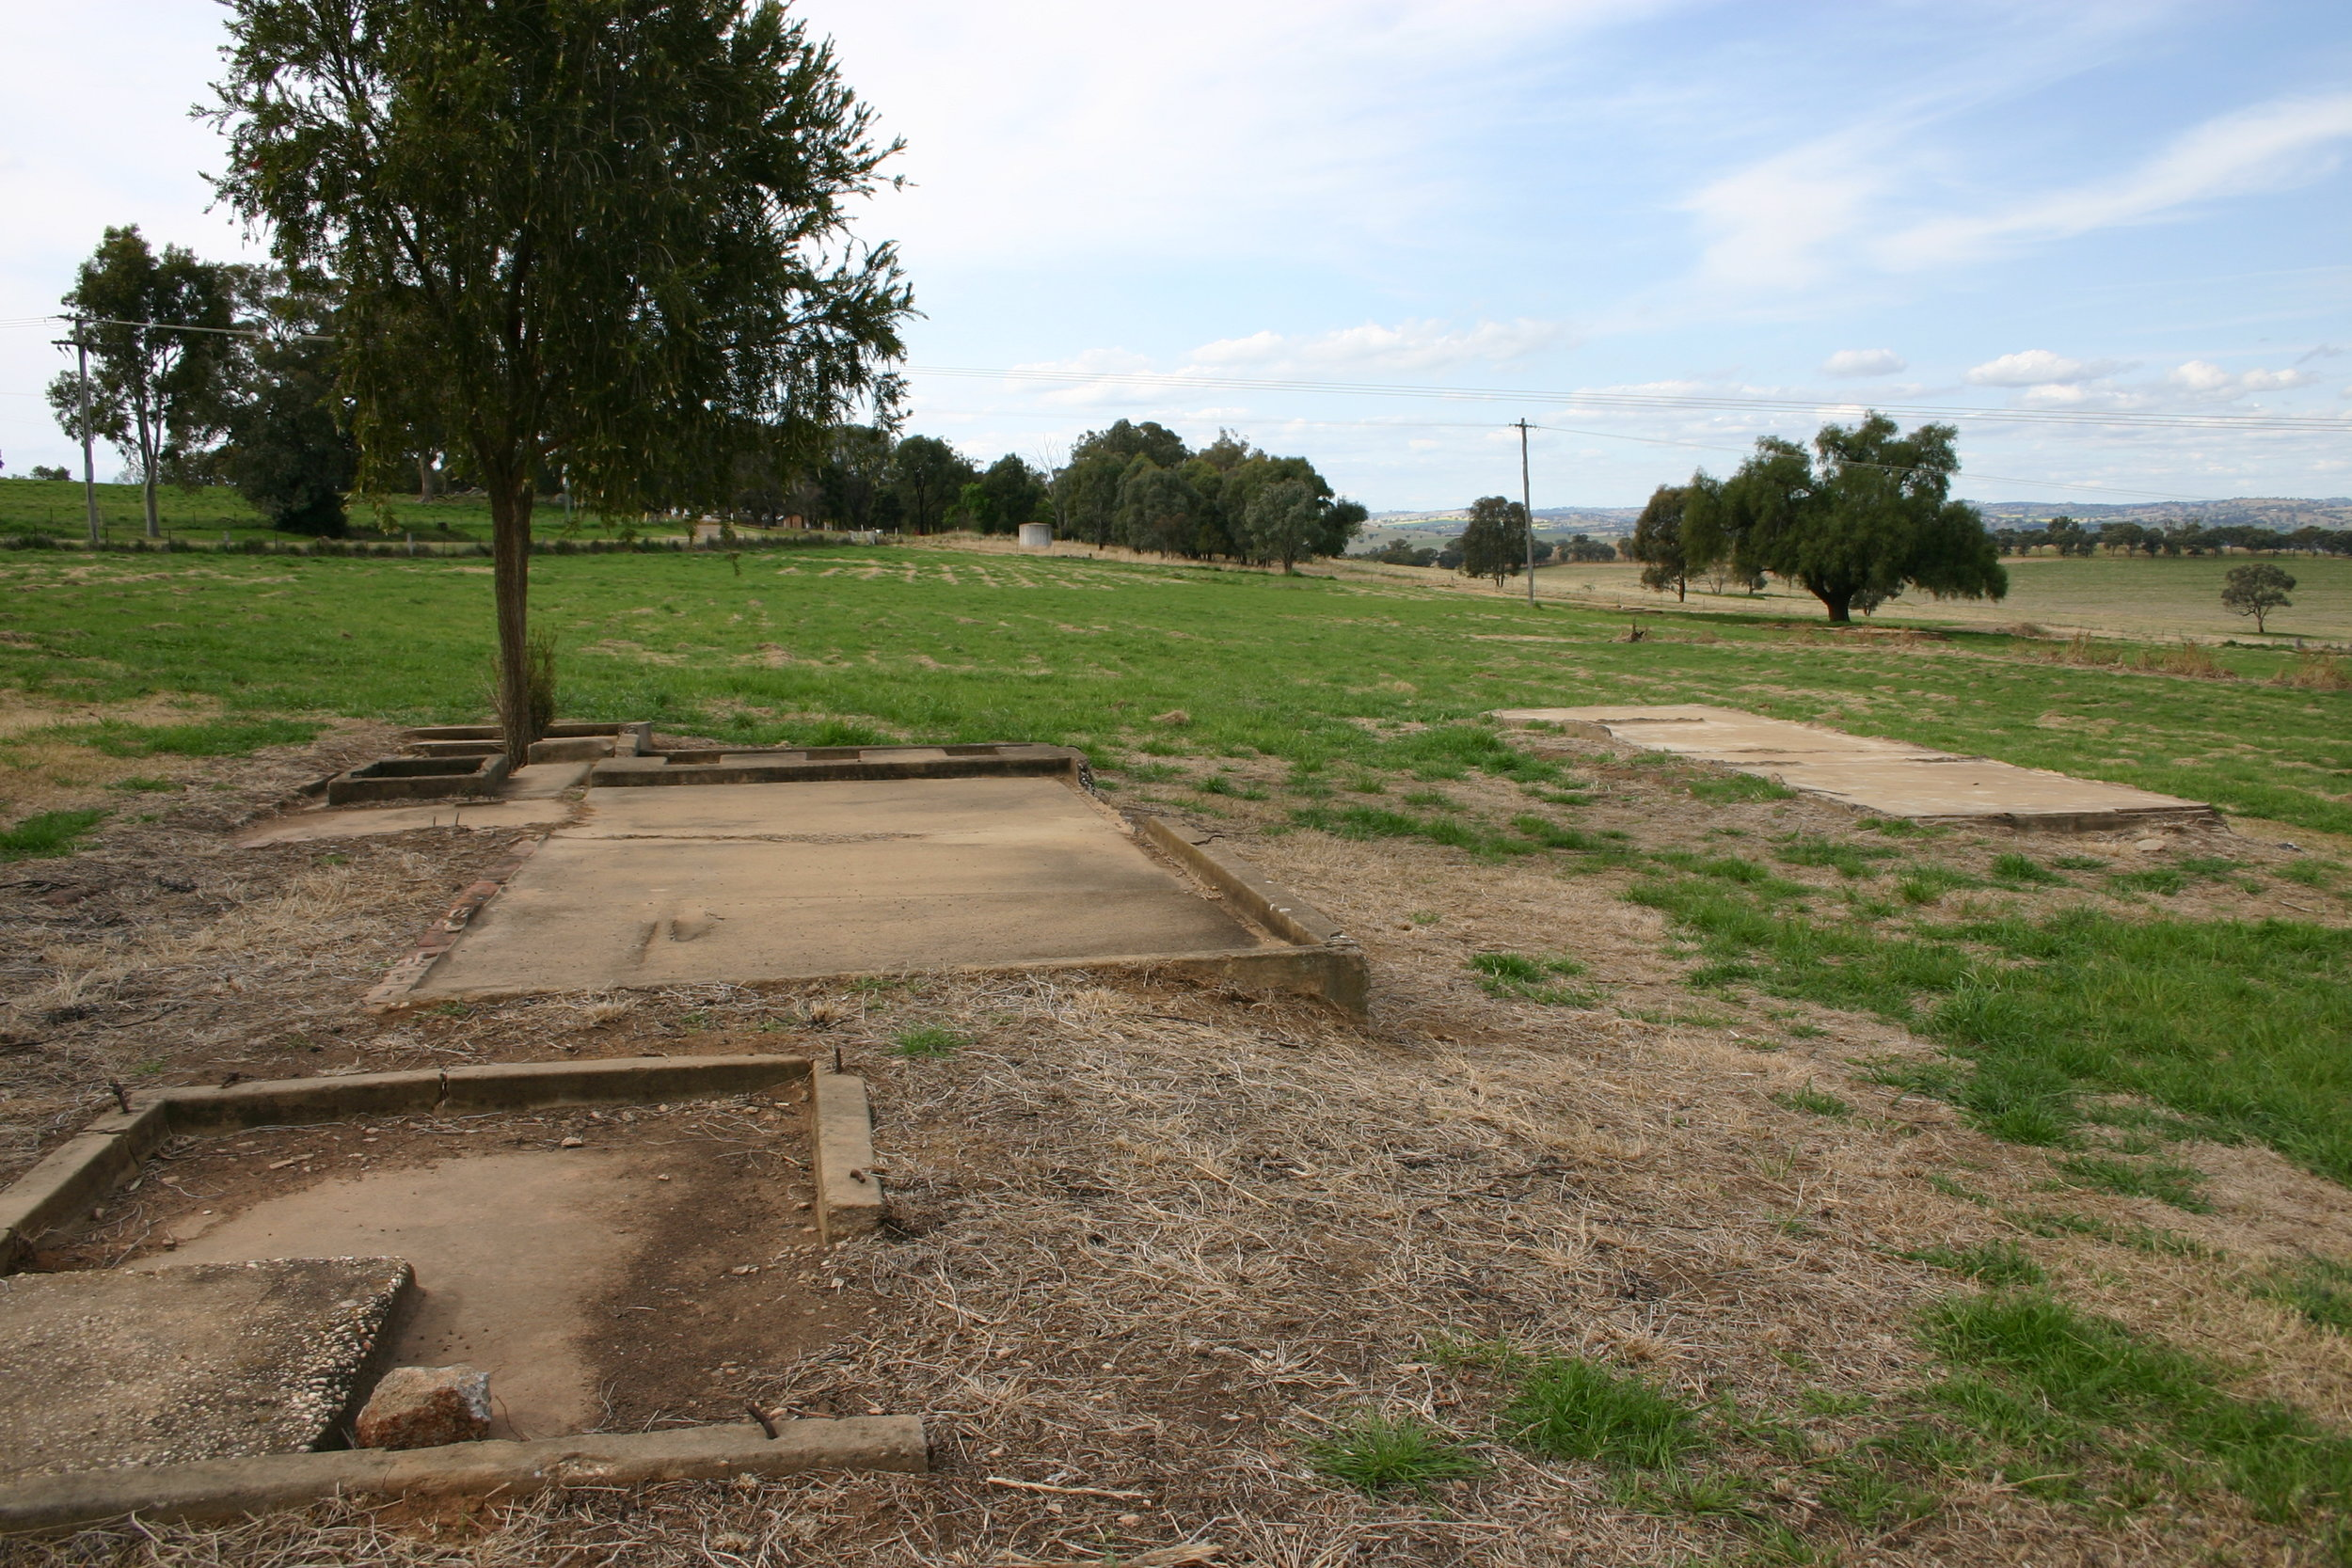 Figure 4. The Cowra Prisoner of War Campsite in Australia. In this place, 231 Japanese POWs were shot dead when staging a mass breakout in August 1944. The campsite has been recovered and landscaped as a heritage site in an effort at conveying this traumatic history. The only physical evidence is the foundations of toilet blocks. Photograph by Anoma Pieris, 2012.